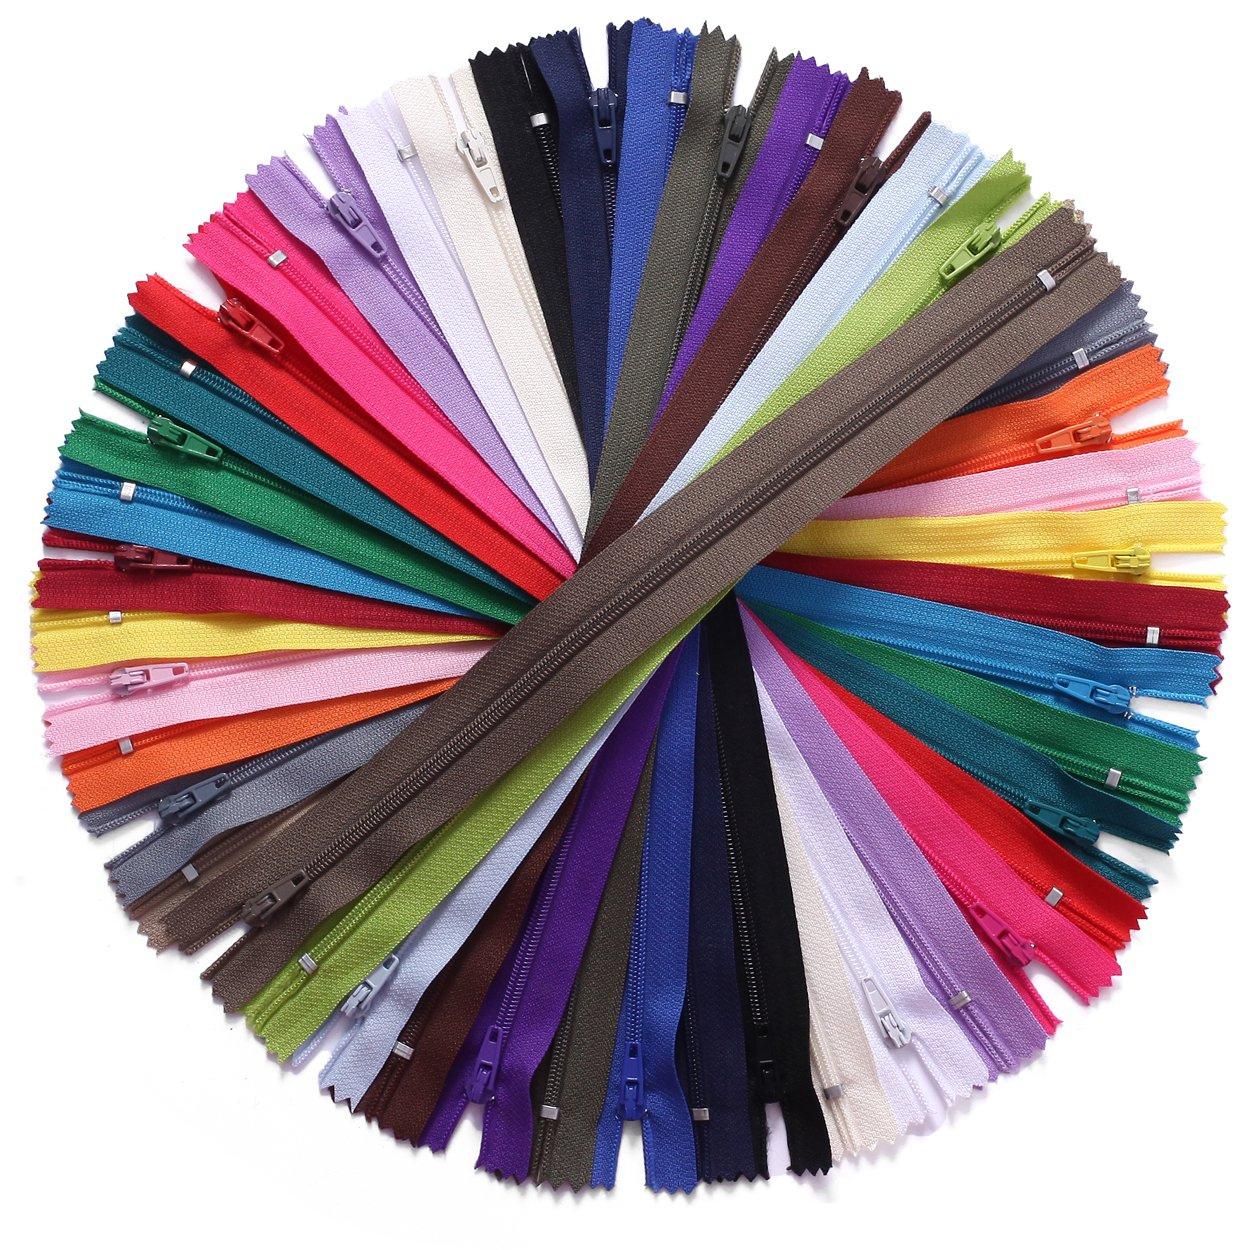 Zippers 18 Inches Nylon Coil Zipper Bulk for Sewing Crafts Tailor Bags 25 Colors JIUZHU 50pcs 18 Inch 45cm